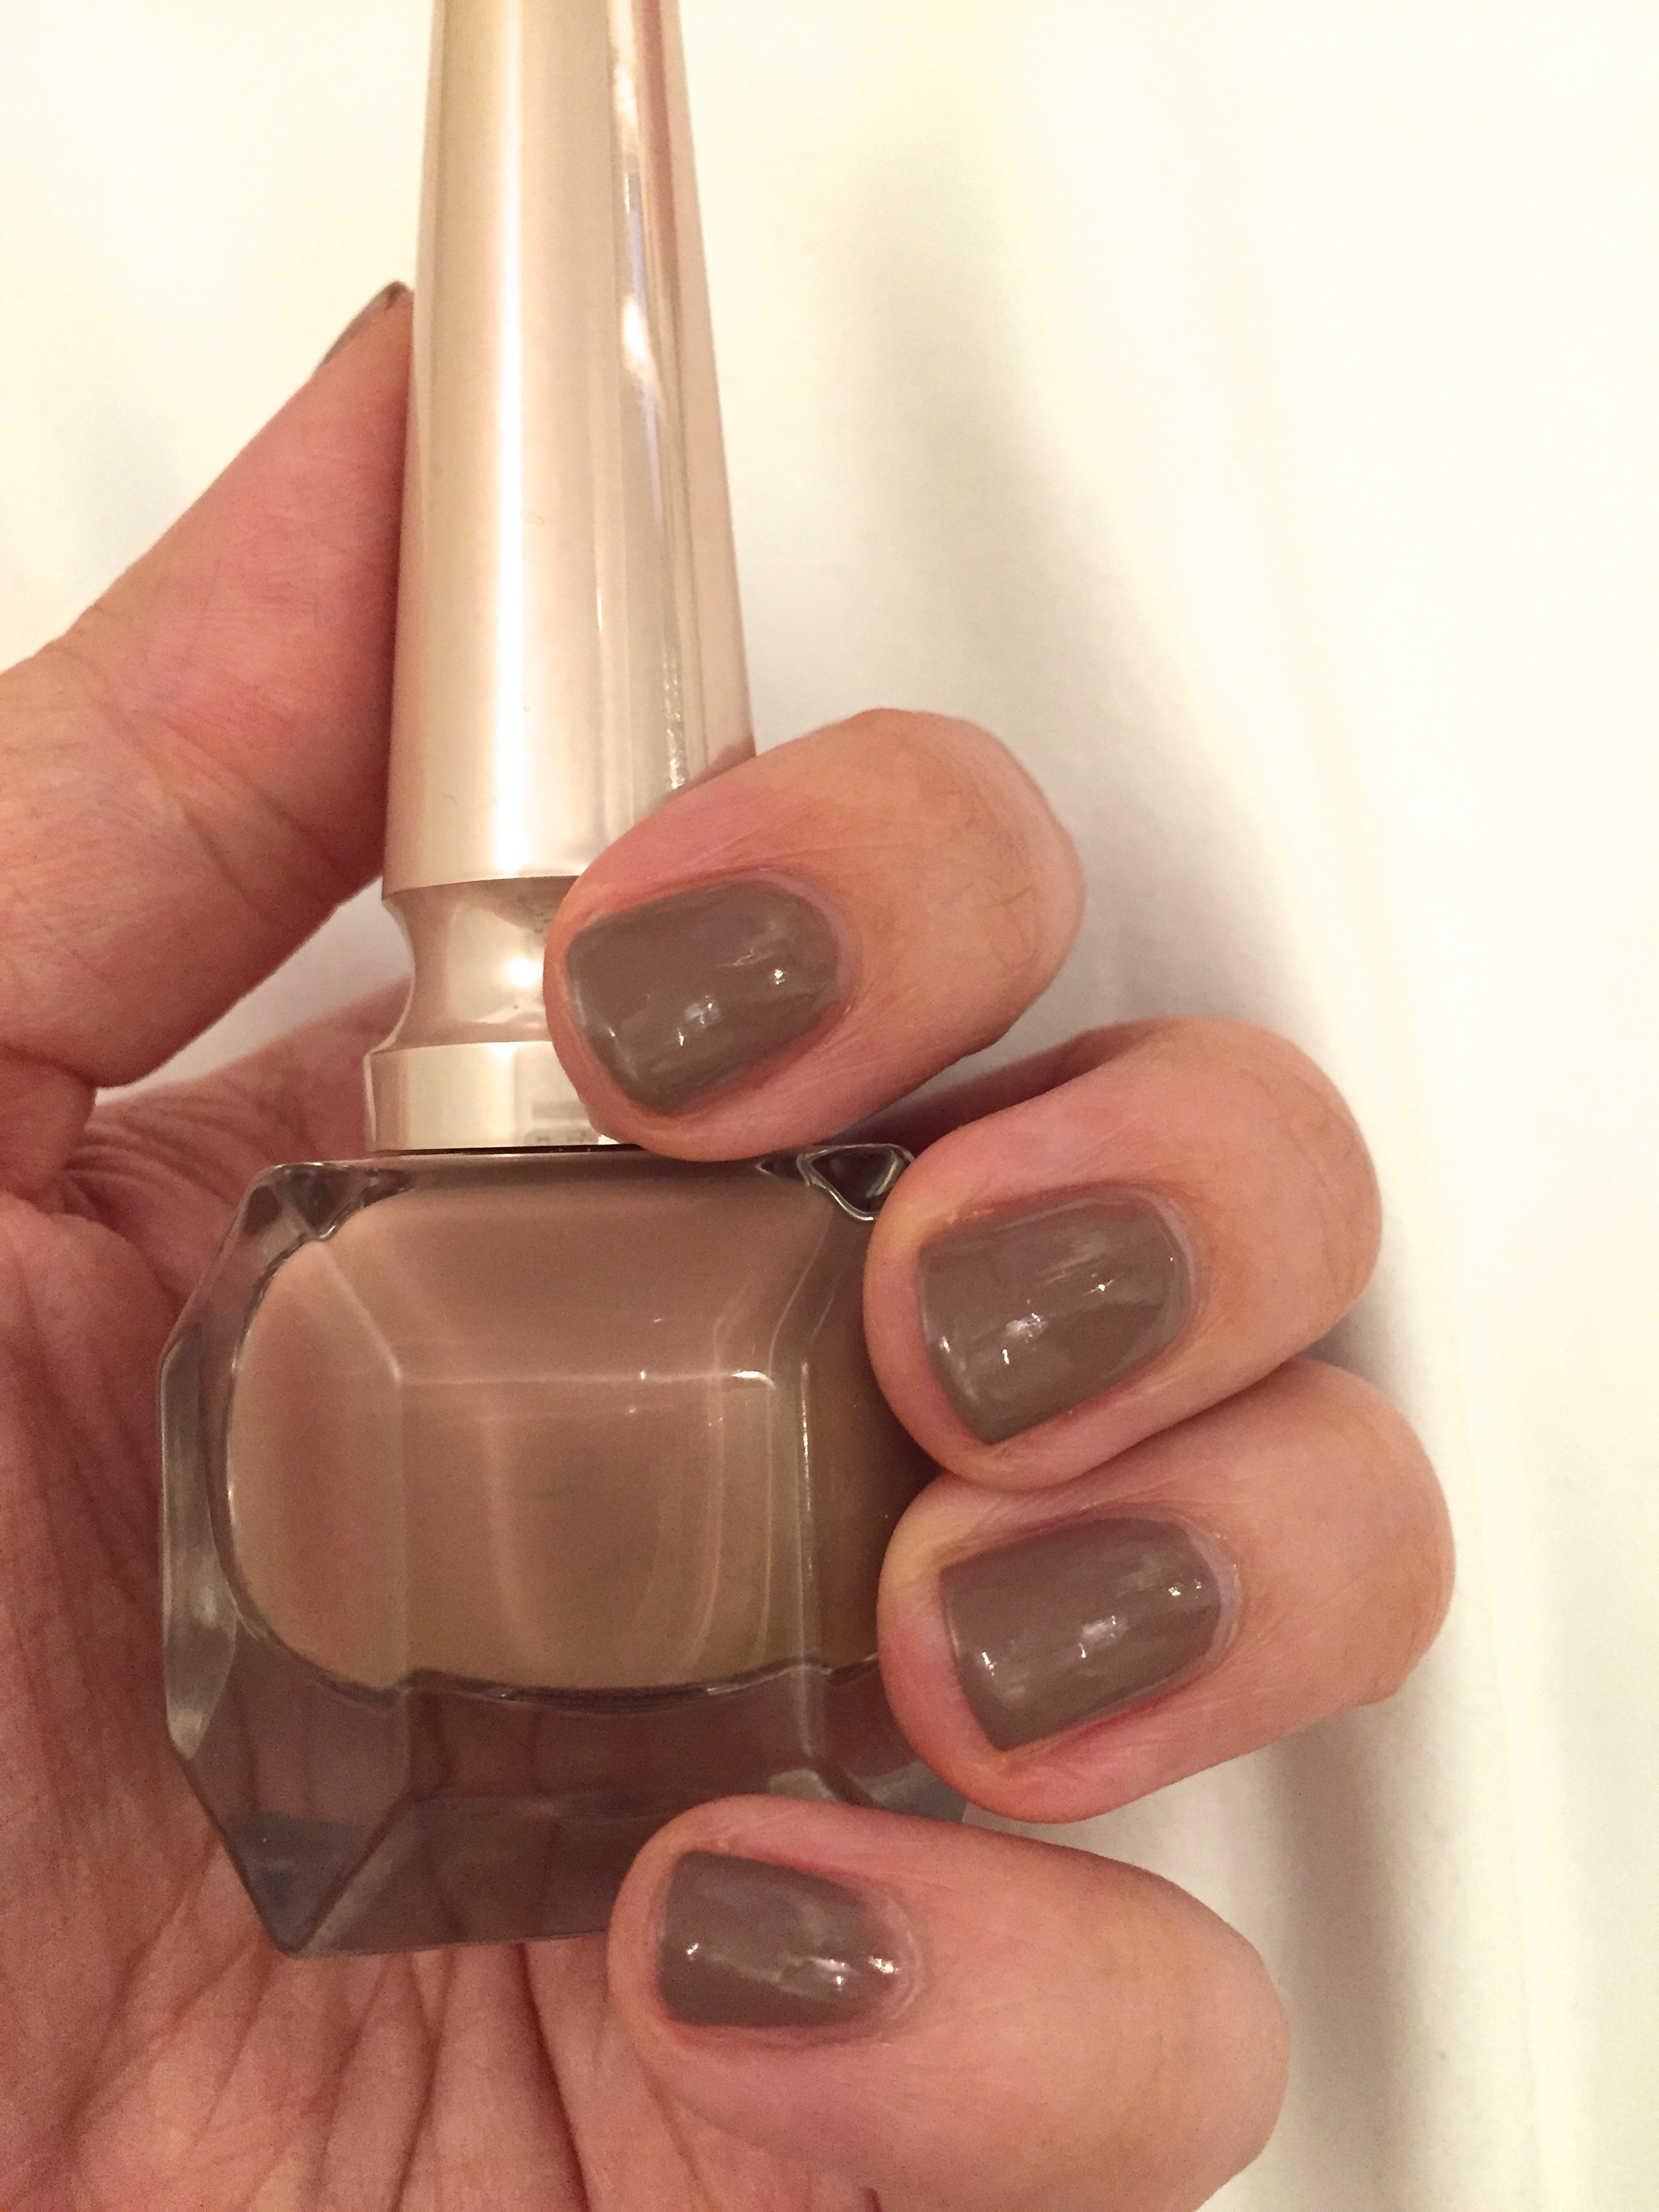 Christian Louboutin Me Nude Nail Colour- Review and Swatch ...